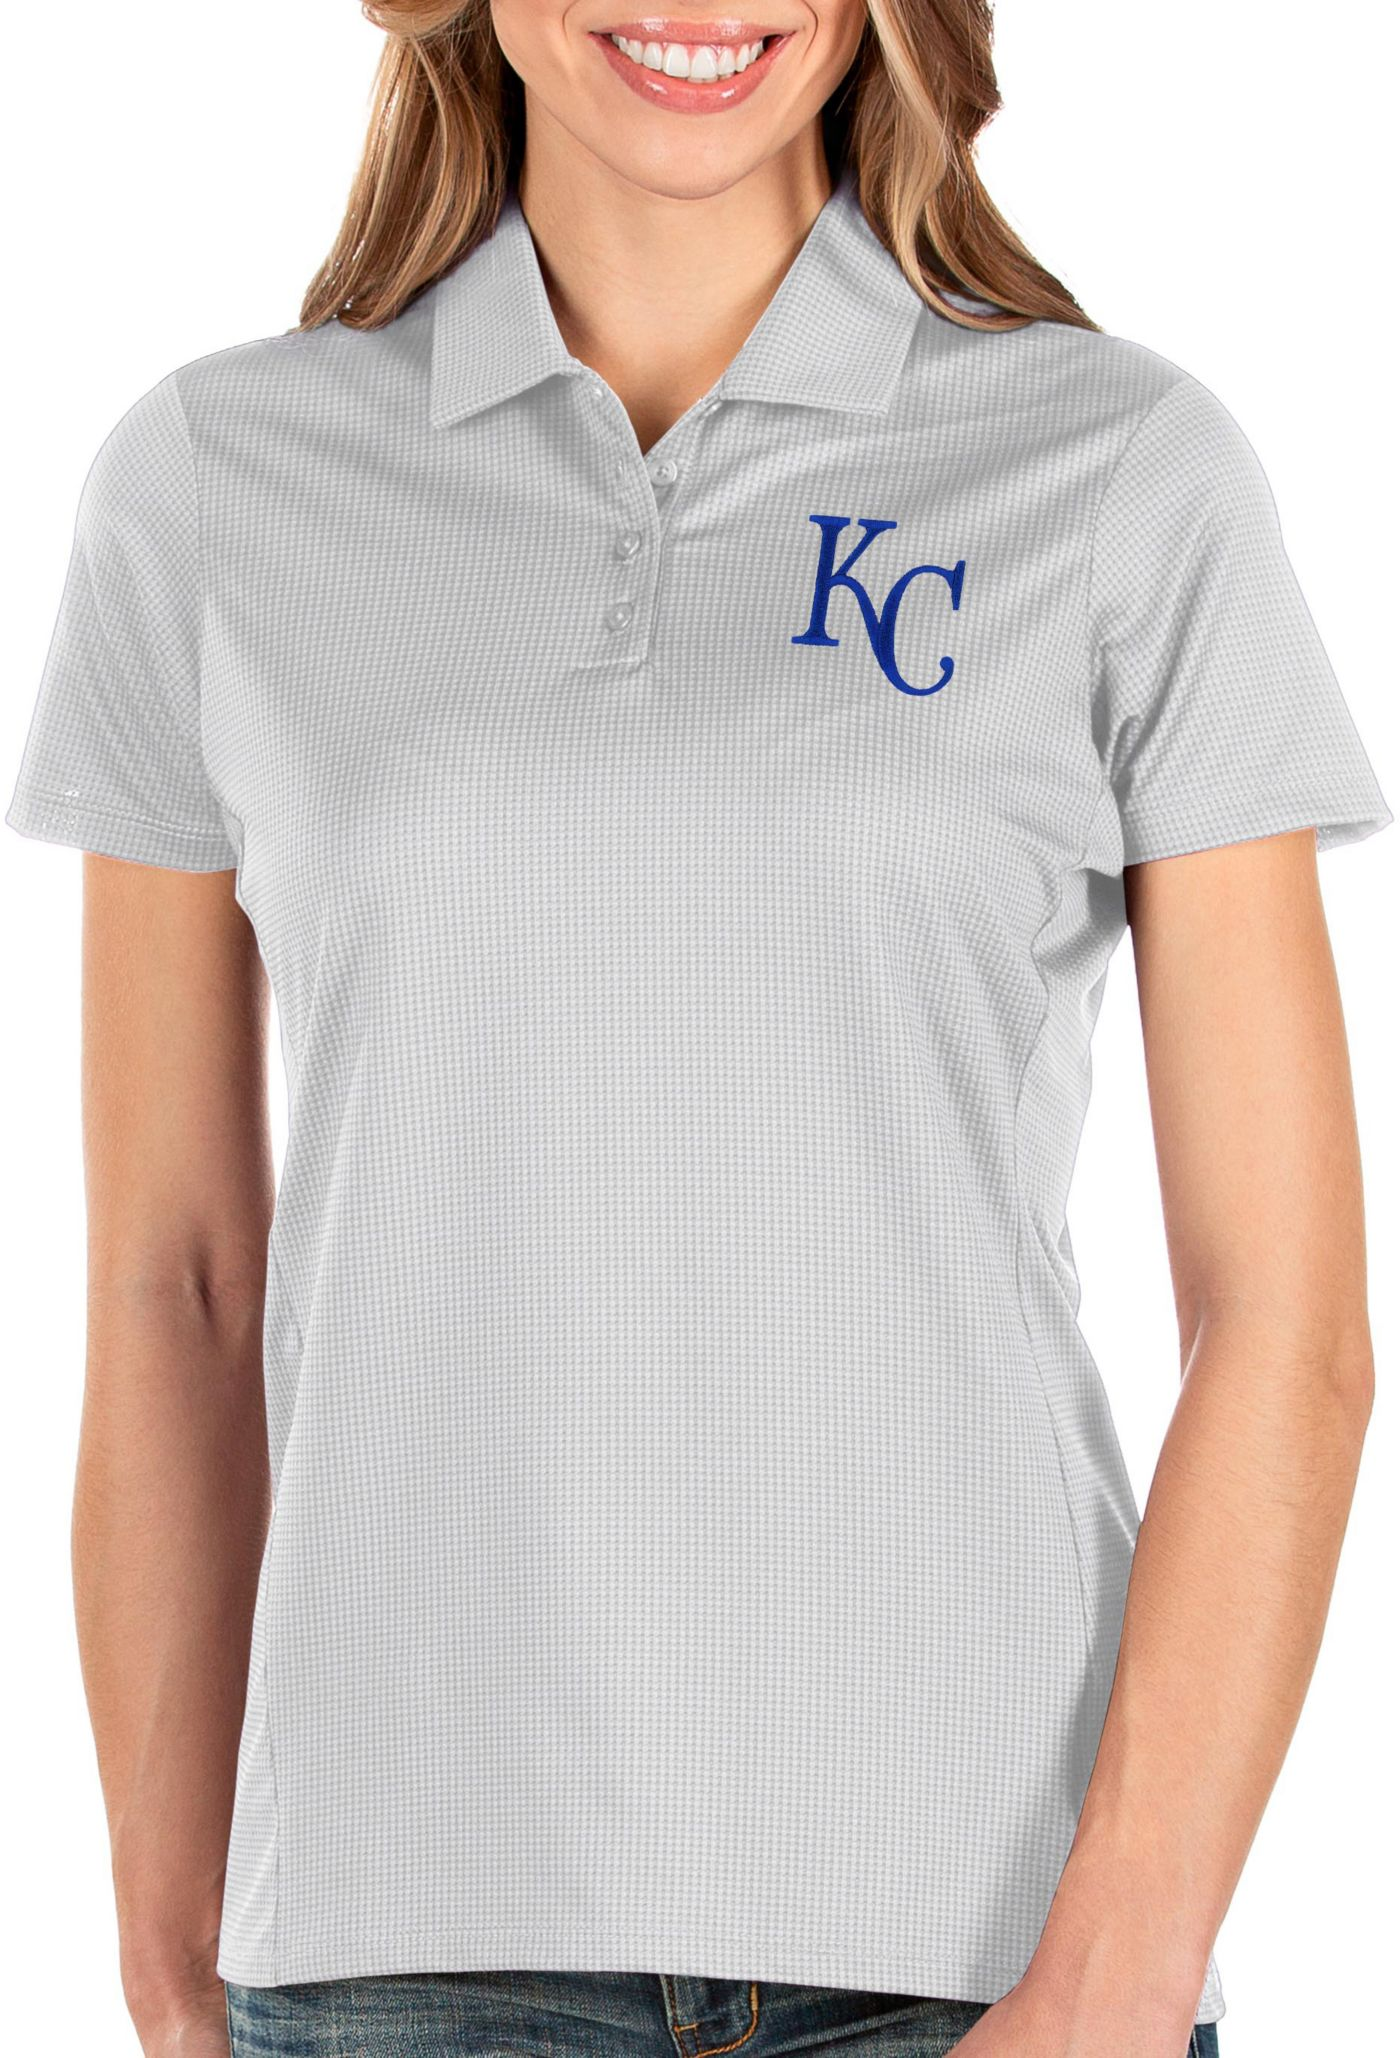 Antigua Women's Kansas City Royals White Balance Polo